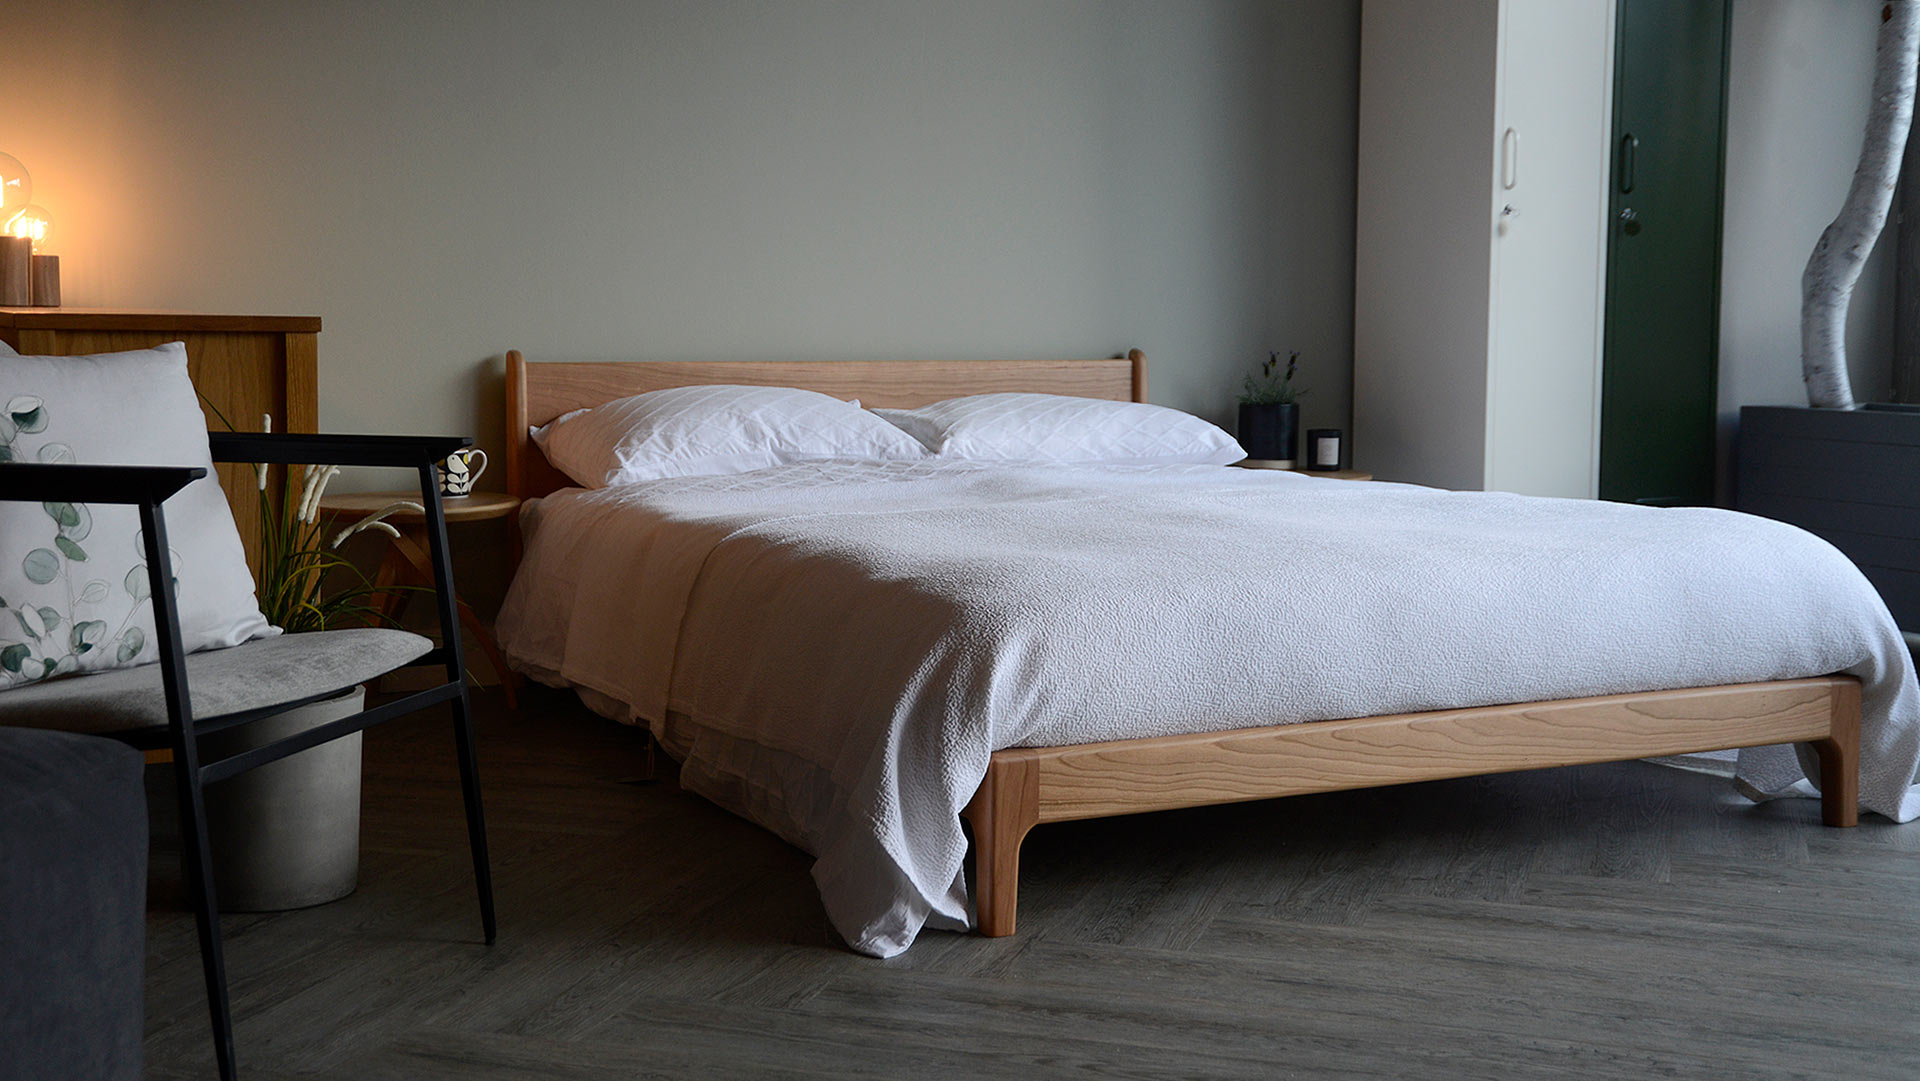 Pimlico bed a low midcentury style wooden bed, here in cherry